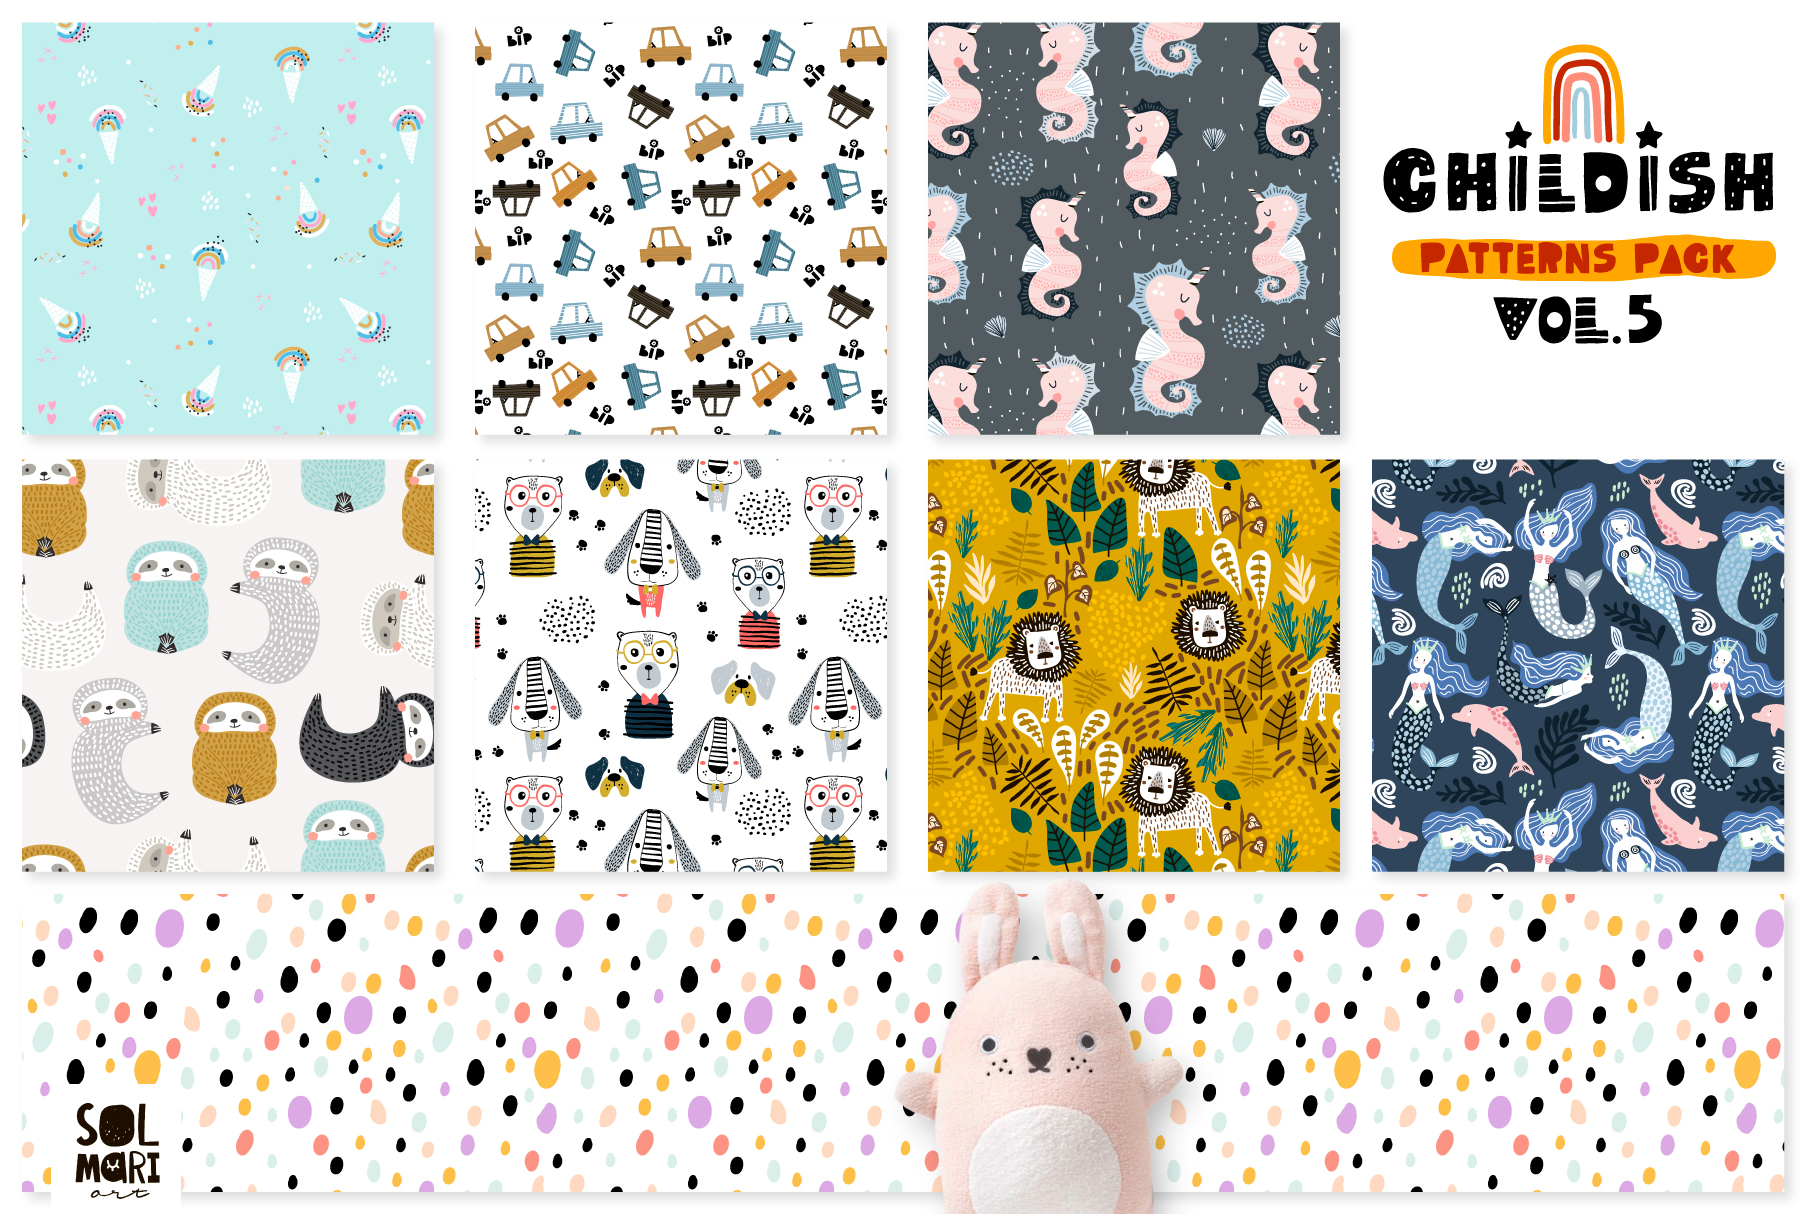 Childish patterns pack vol. 5 example image 5